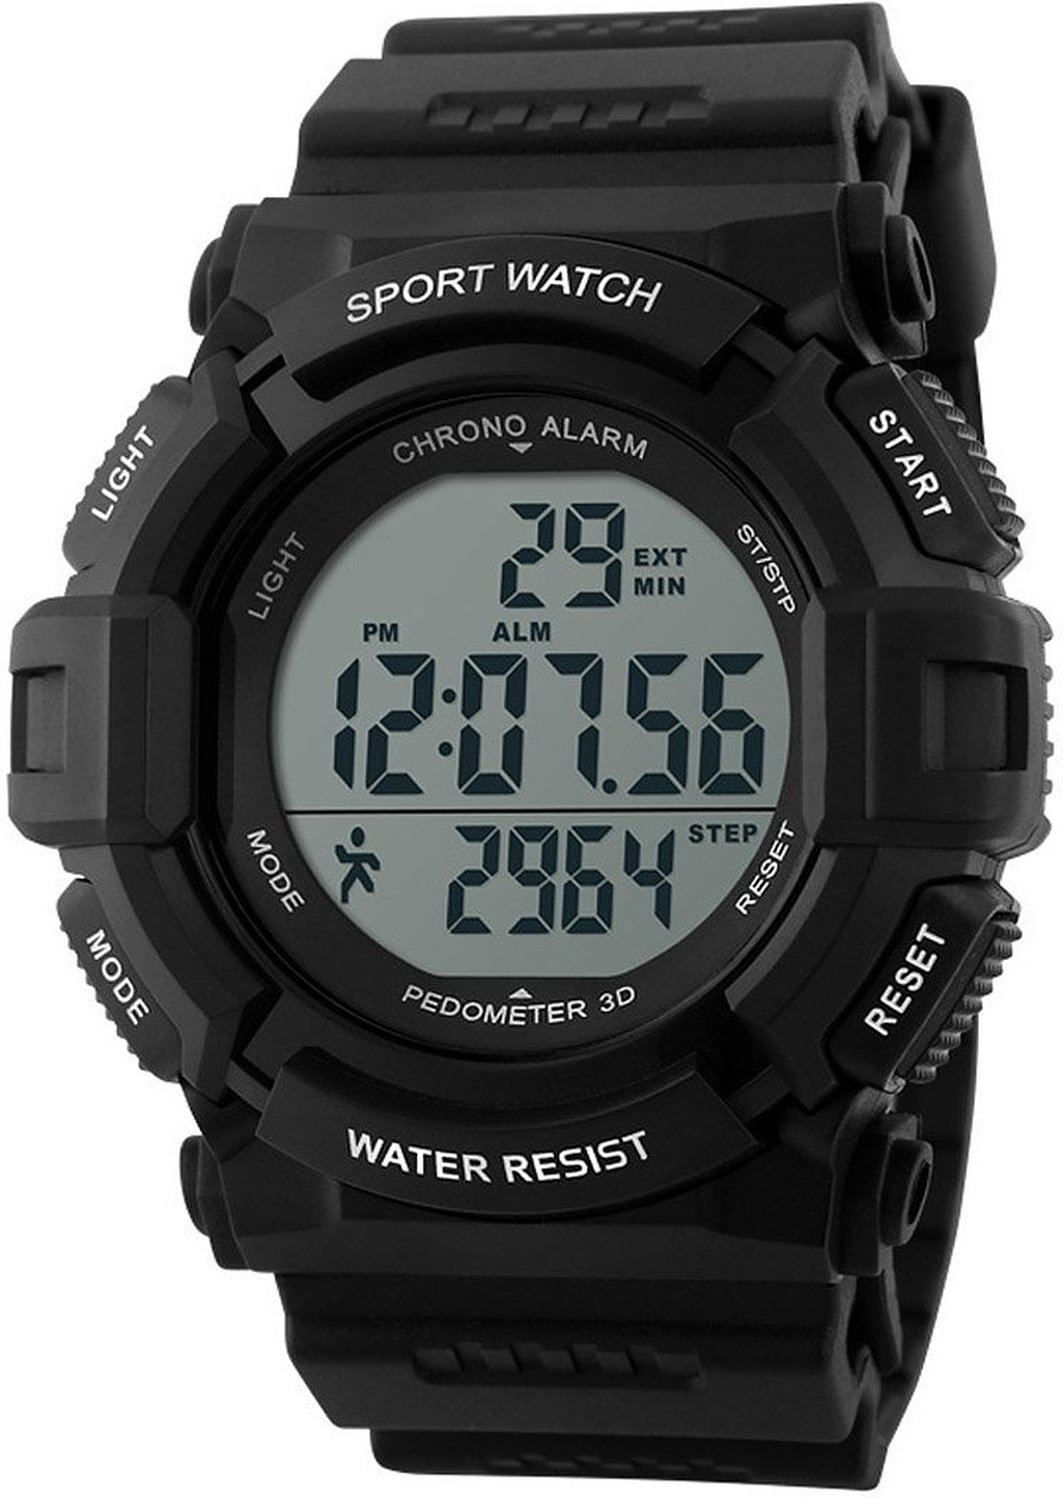 Carlien Sports Digital Watch with Pedometer 3D Function 5ATM Water Resistant for Men Students